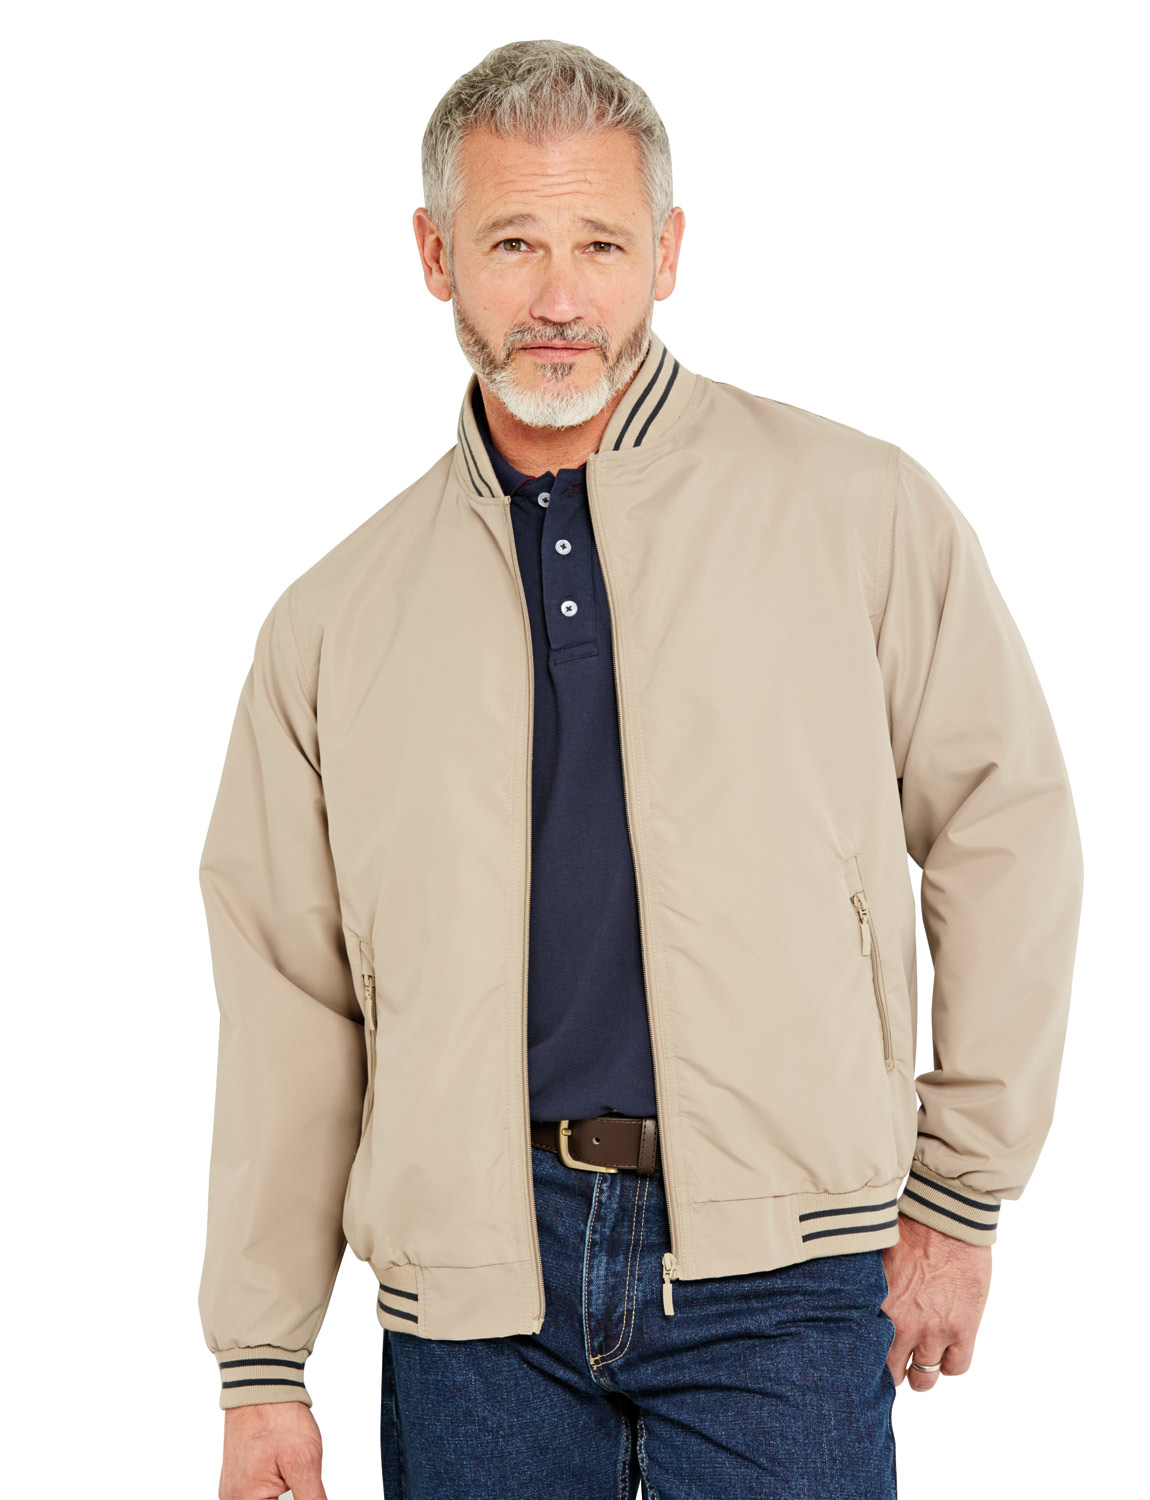 Mens Classic Harrington Jacket Coat